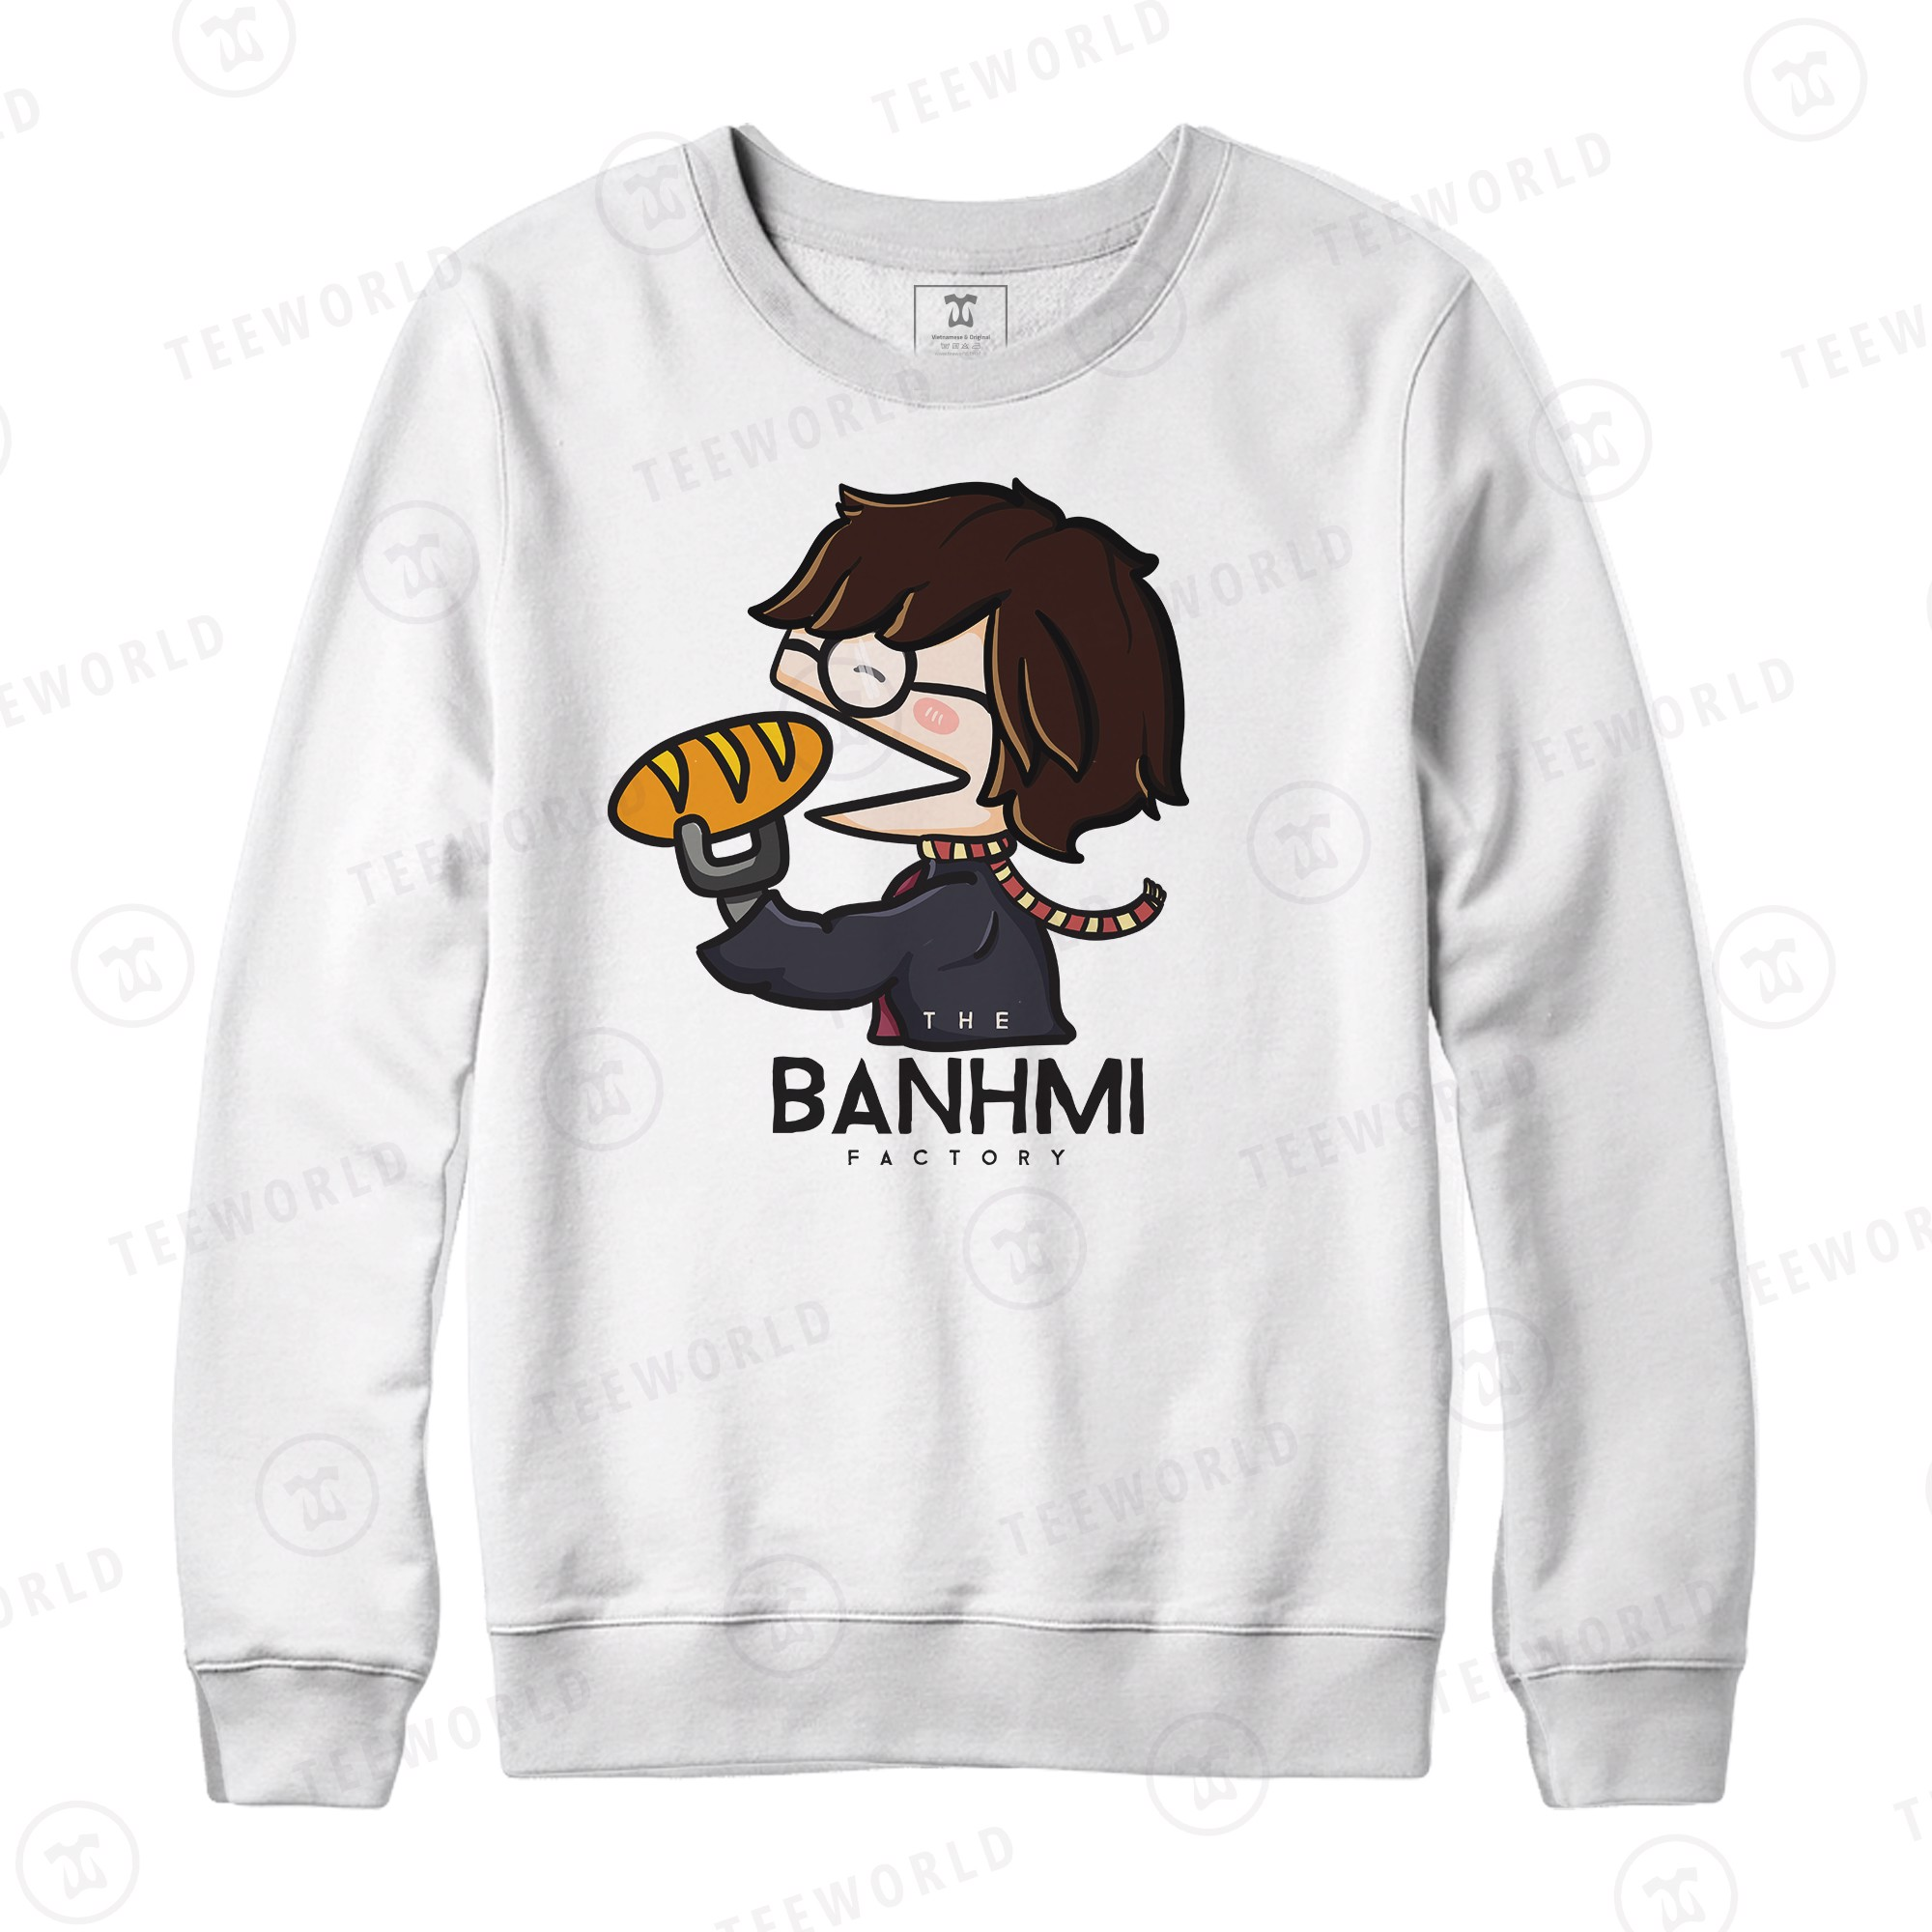 Harry Potter X The Banhmi Factory Sweater